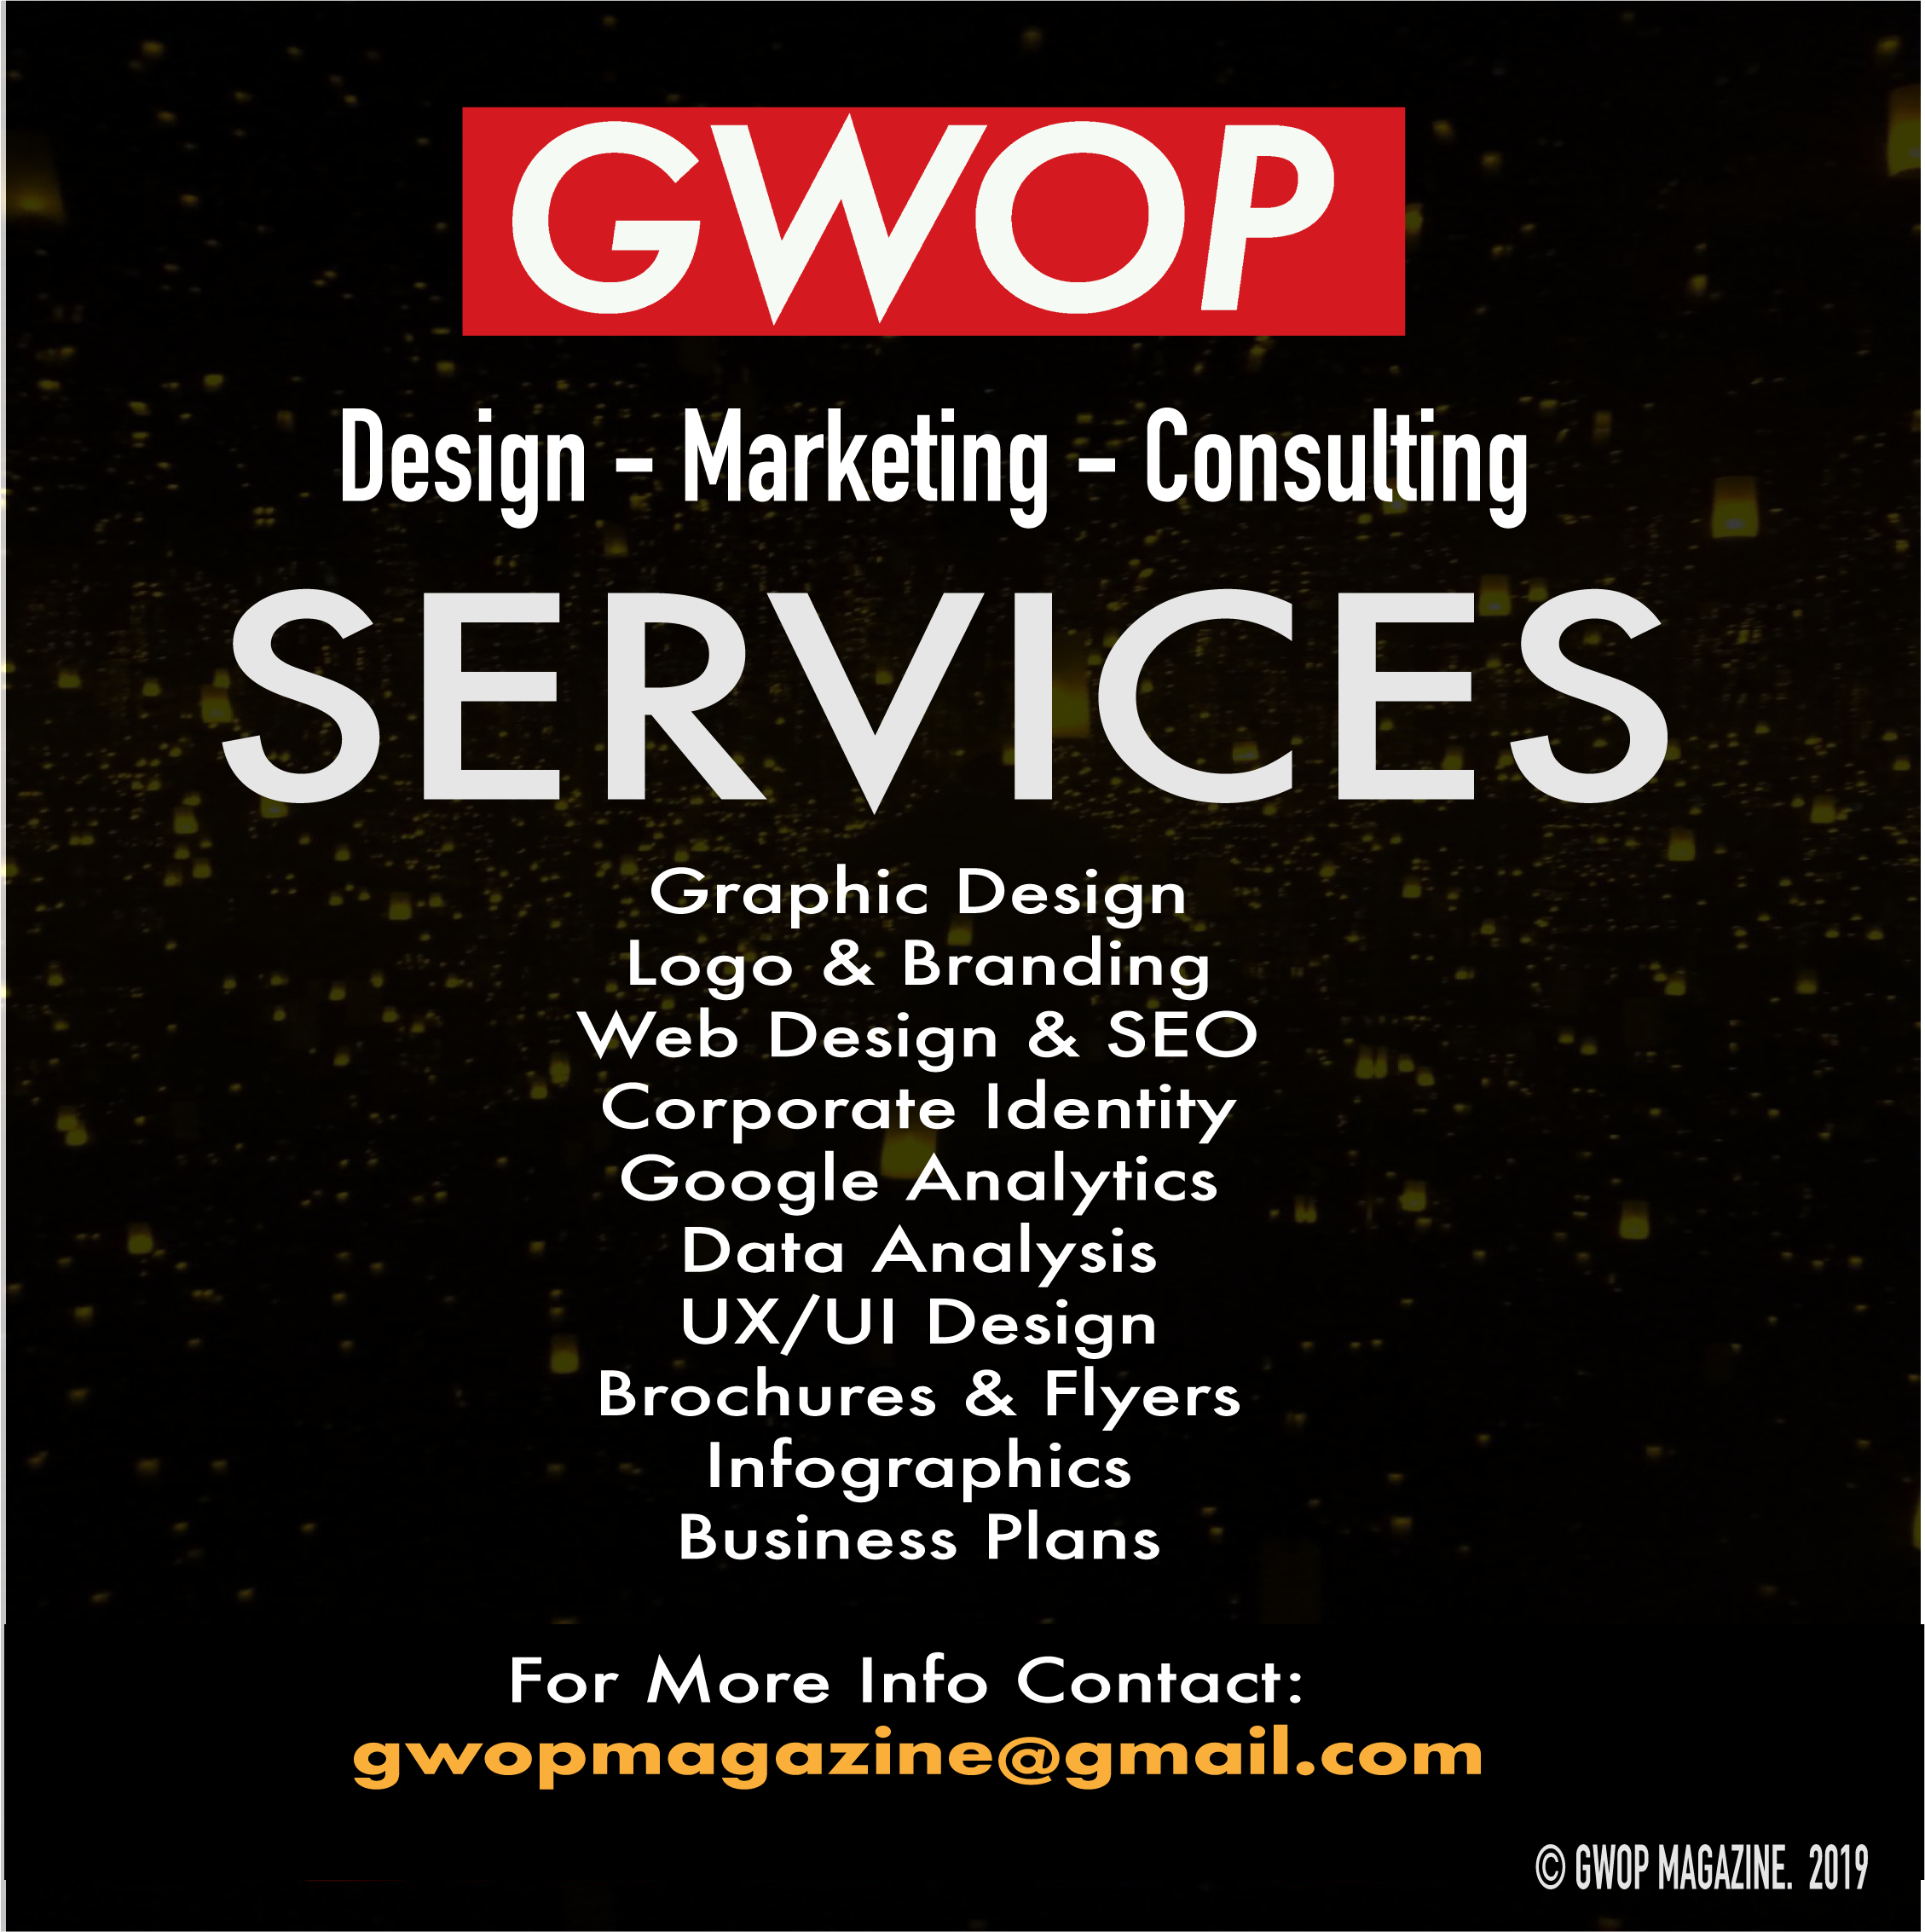 GWOP Graphic Design